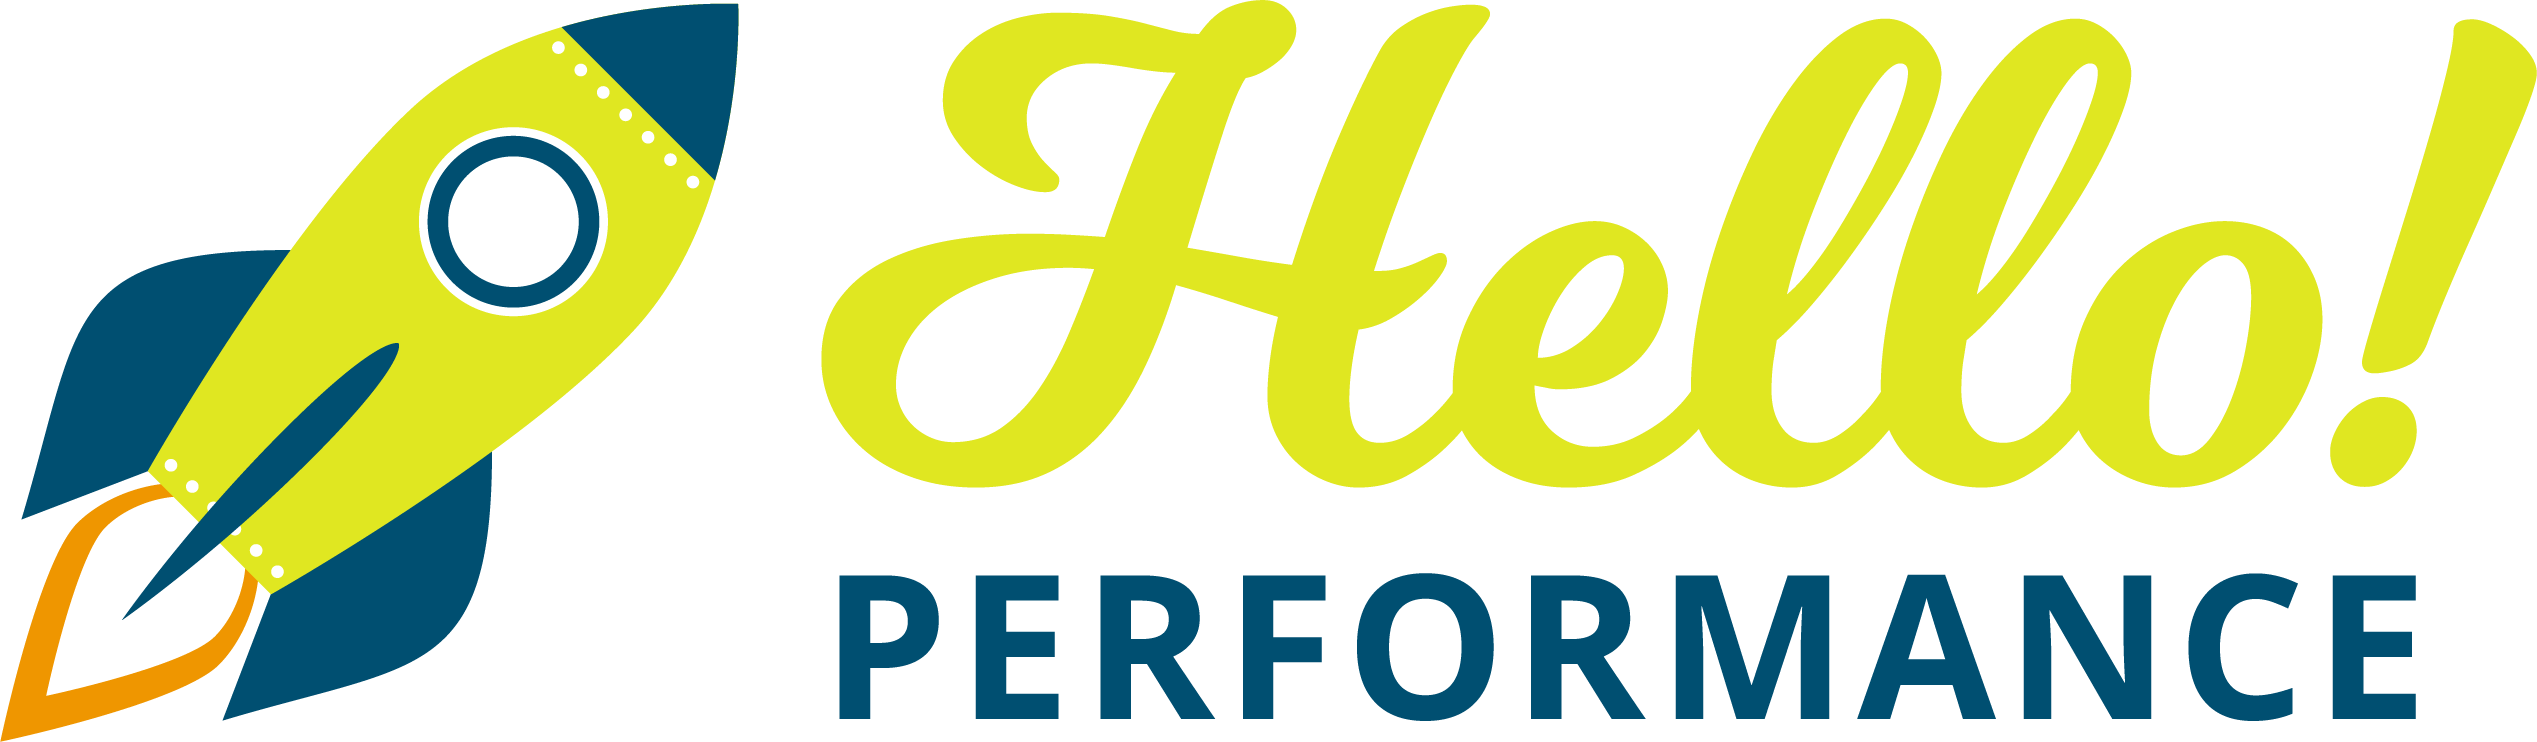 Hello Performance GmbH – Performance Online Marketing bei Frankfurt